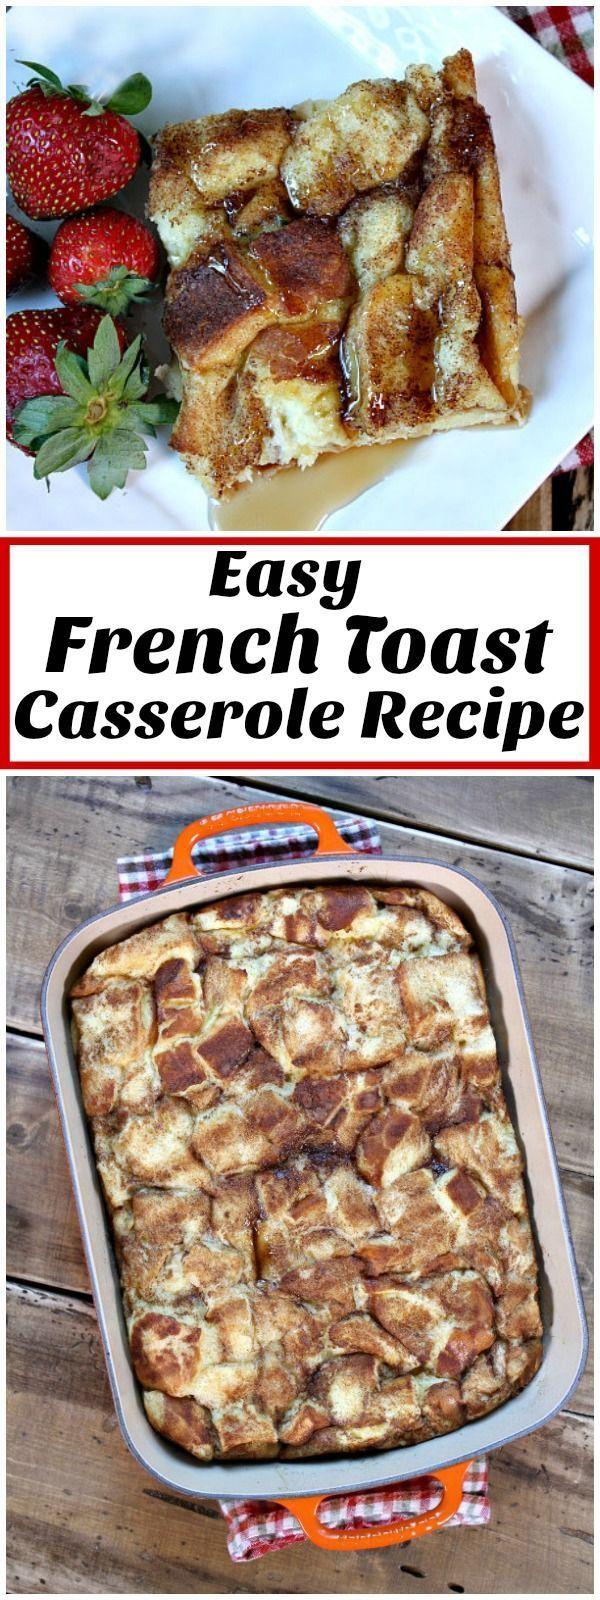 Classic, Easy French Toast Casserole recipe from RecipeGirl.com This is the perfect holiday breakfast recipe. In partnership with the new movie Almost Christmas, in theaters everywhere November 11.